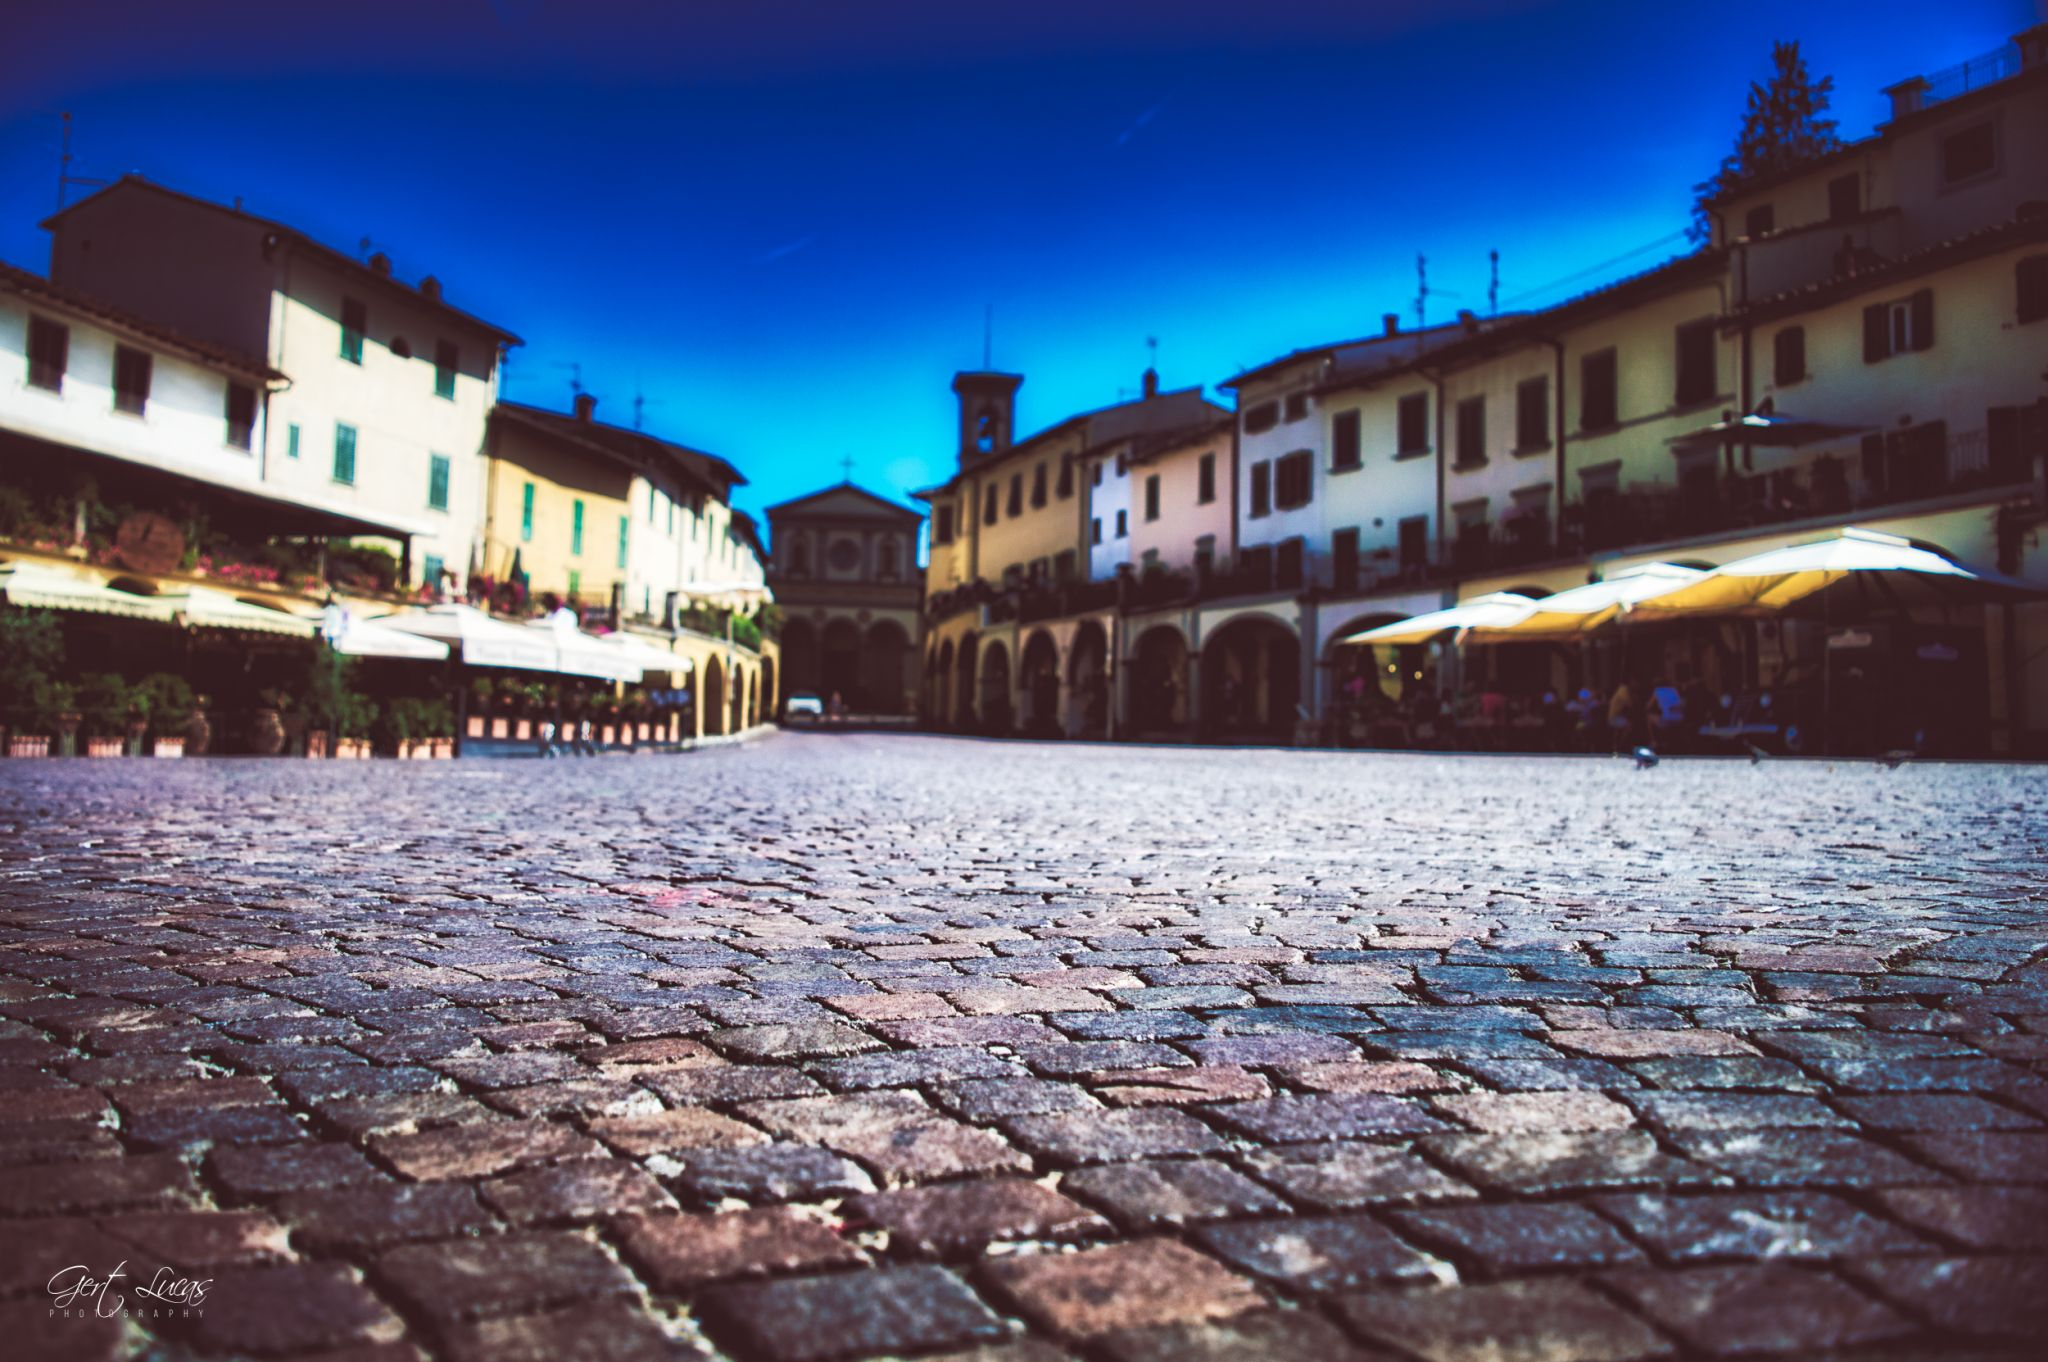 Greve - townsquare, Italy